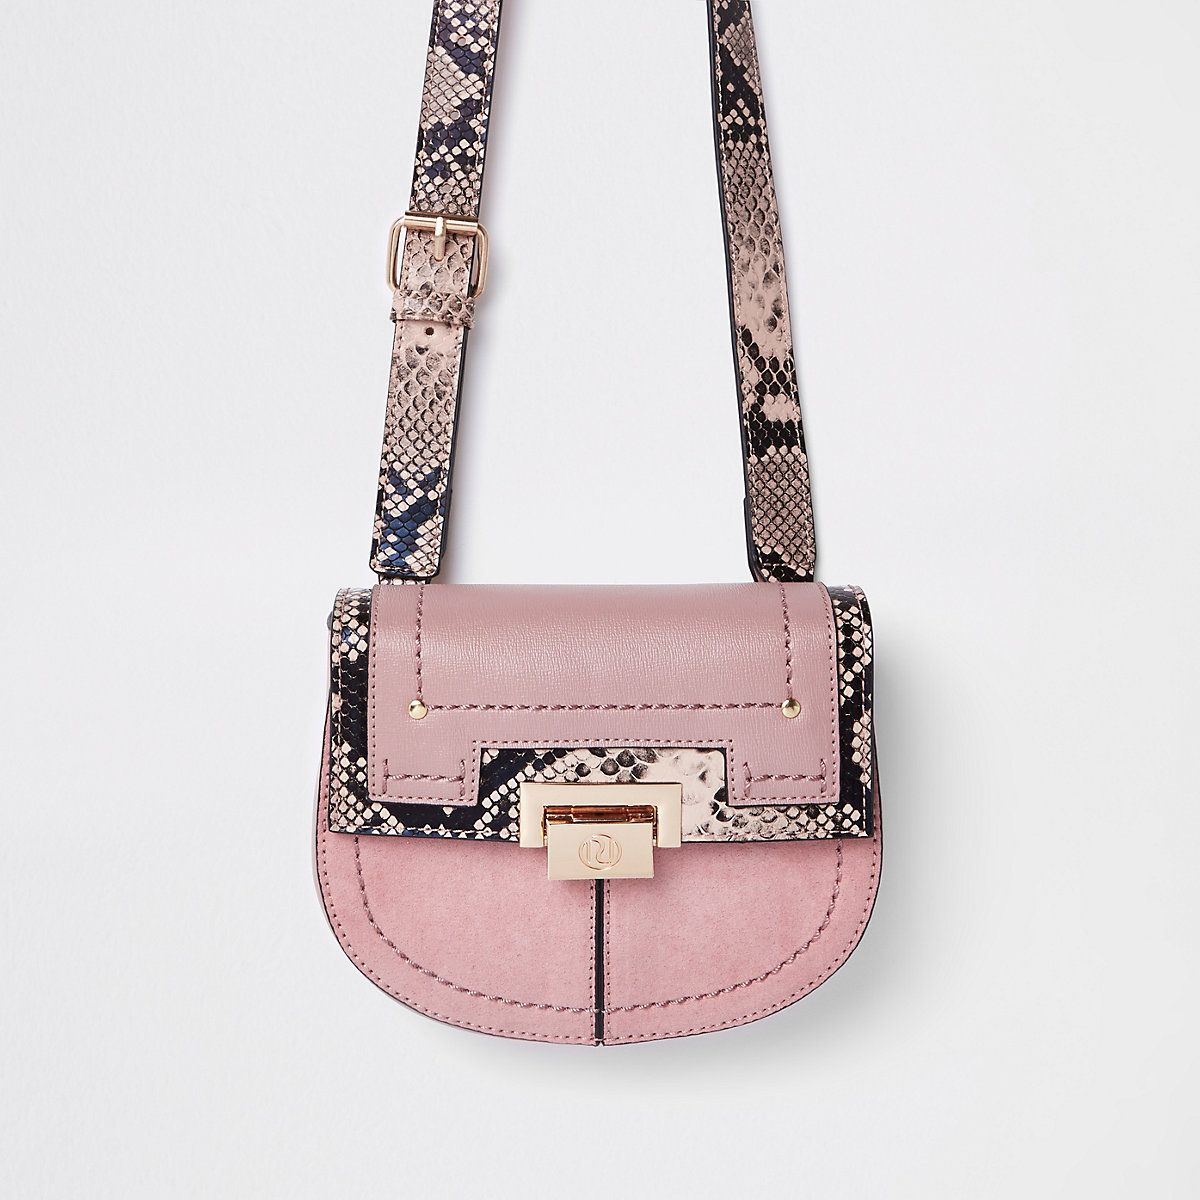 3dc8bf9466a6 Pink snake print lock front beltbag - Bumbags - Bags   Purses ...